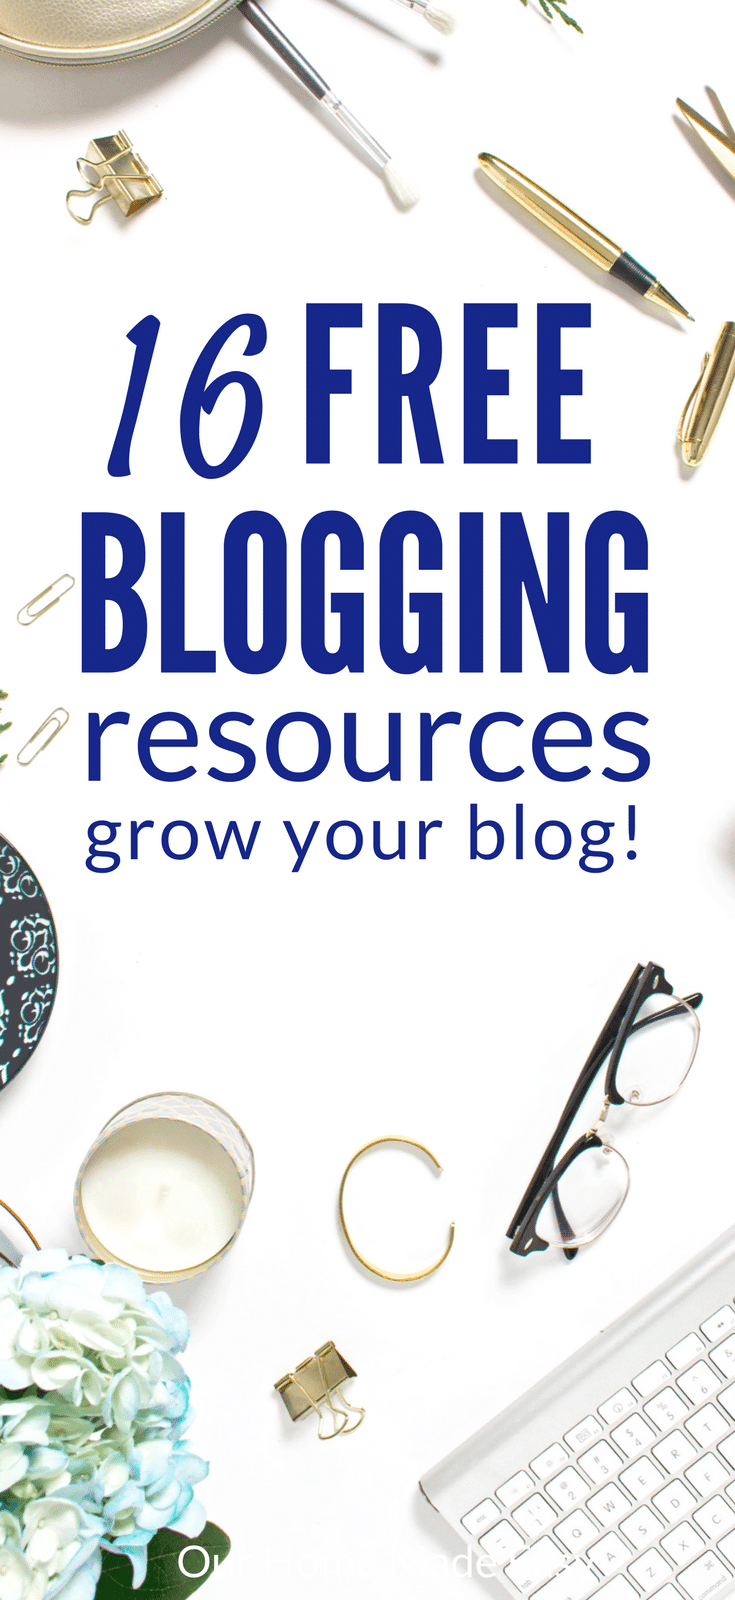 Want the best free blogging resources? I've found 16 of my favorite from successful bloggers! Click here to learn from the best-- for free!